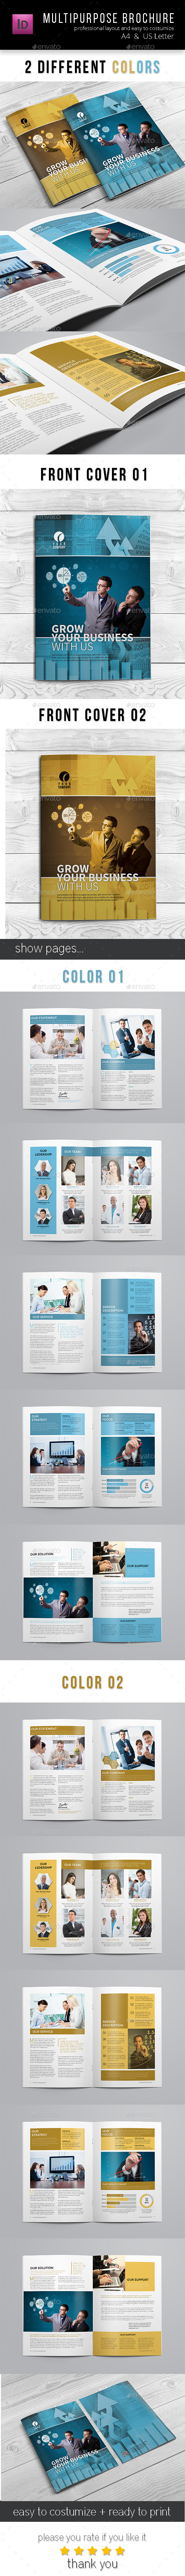 Corporate Business Brochure 12 pages A4 + Letter - Corporate Brochures